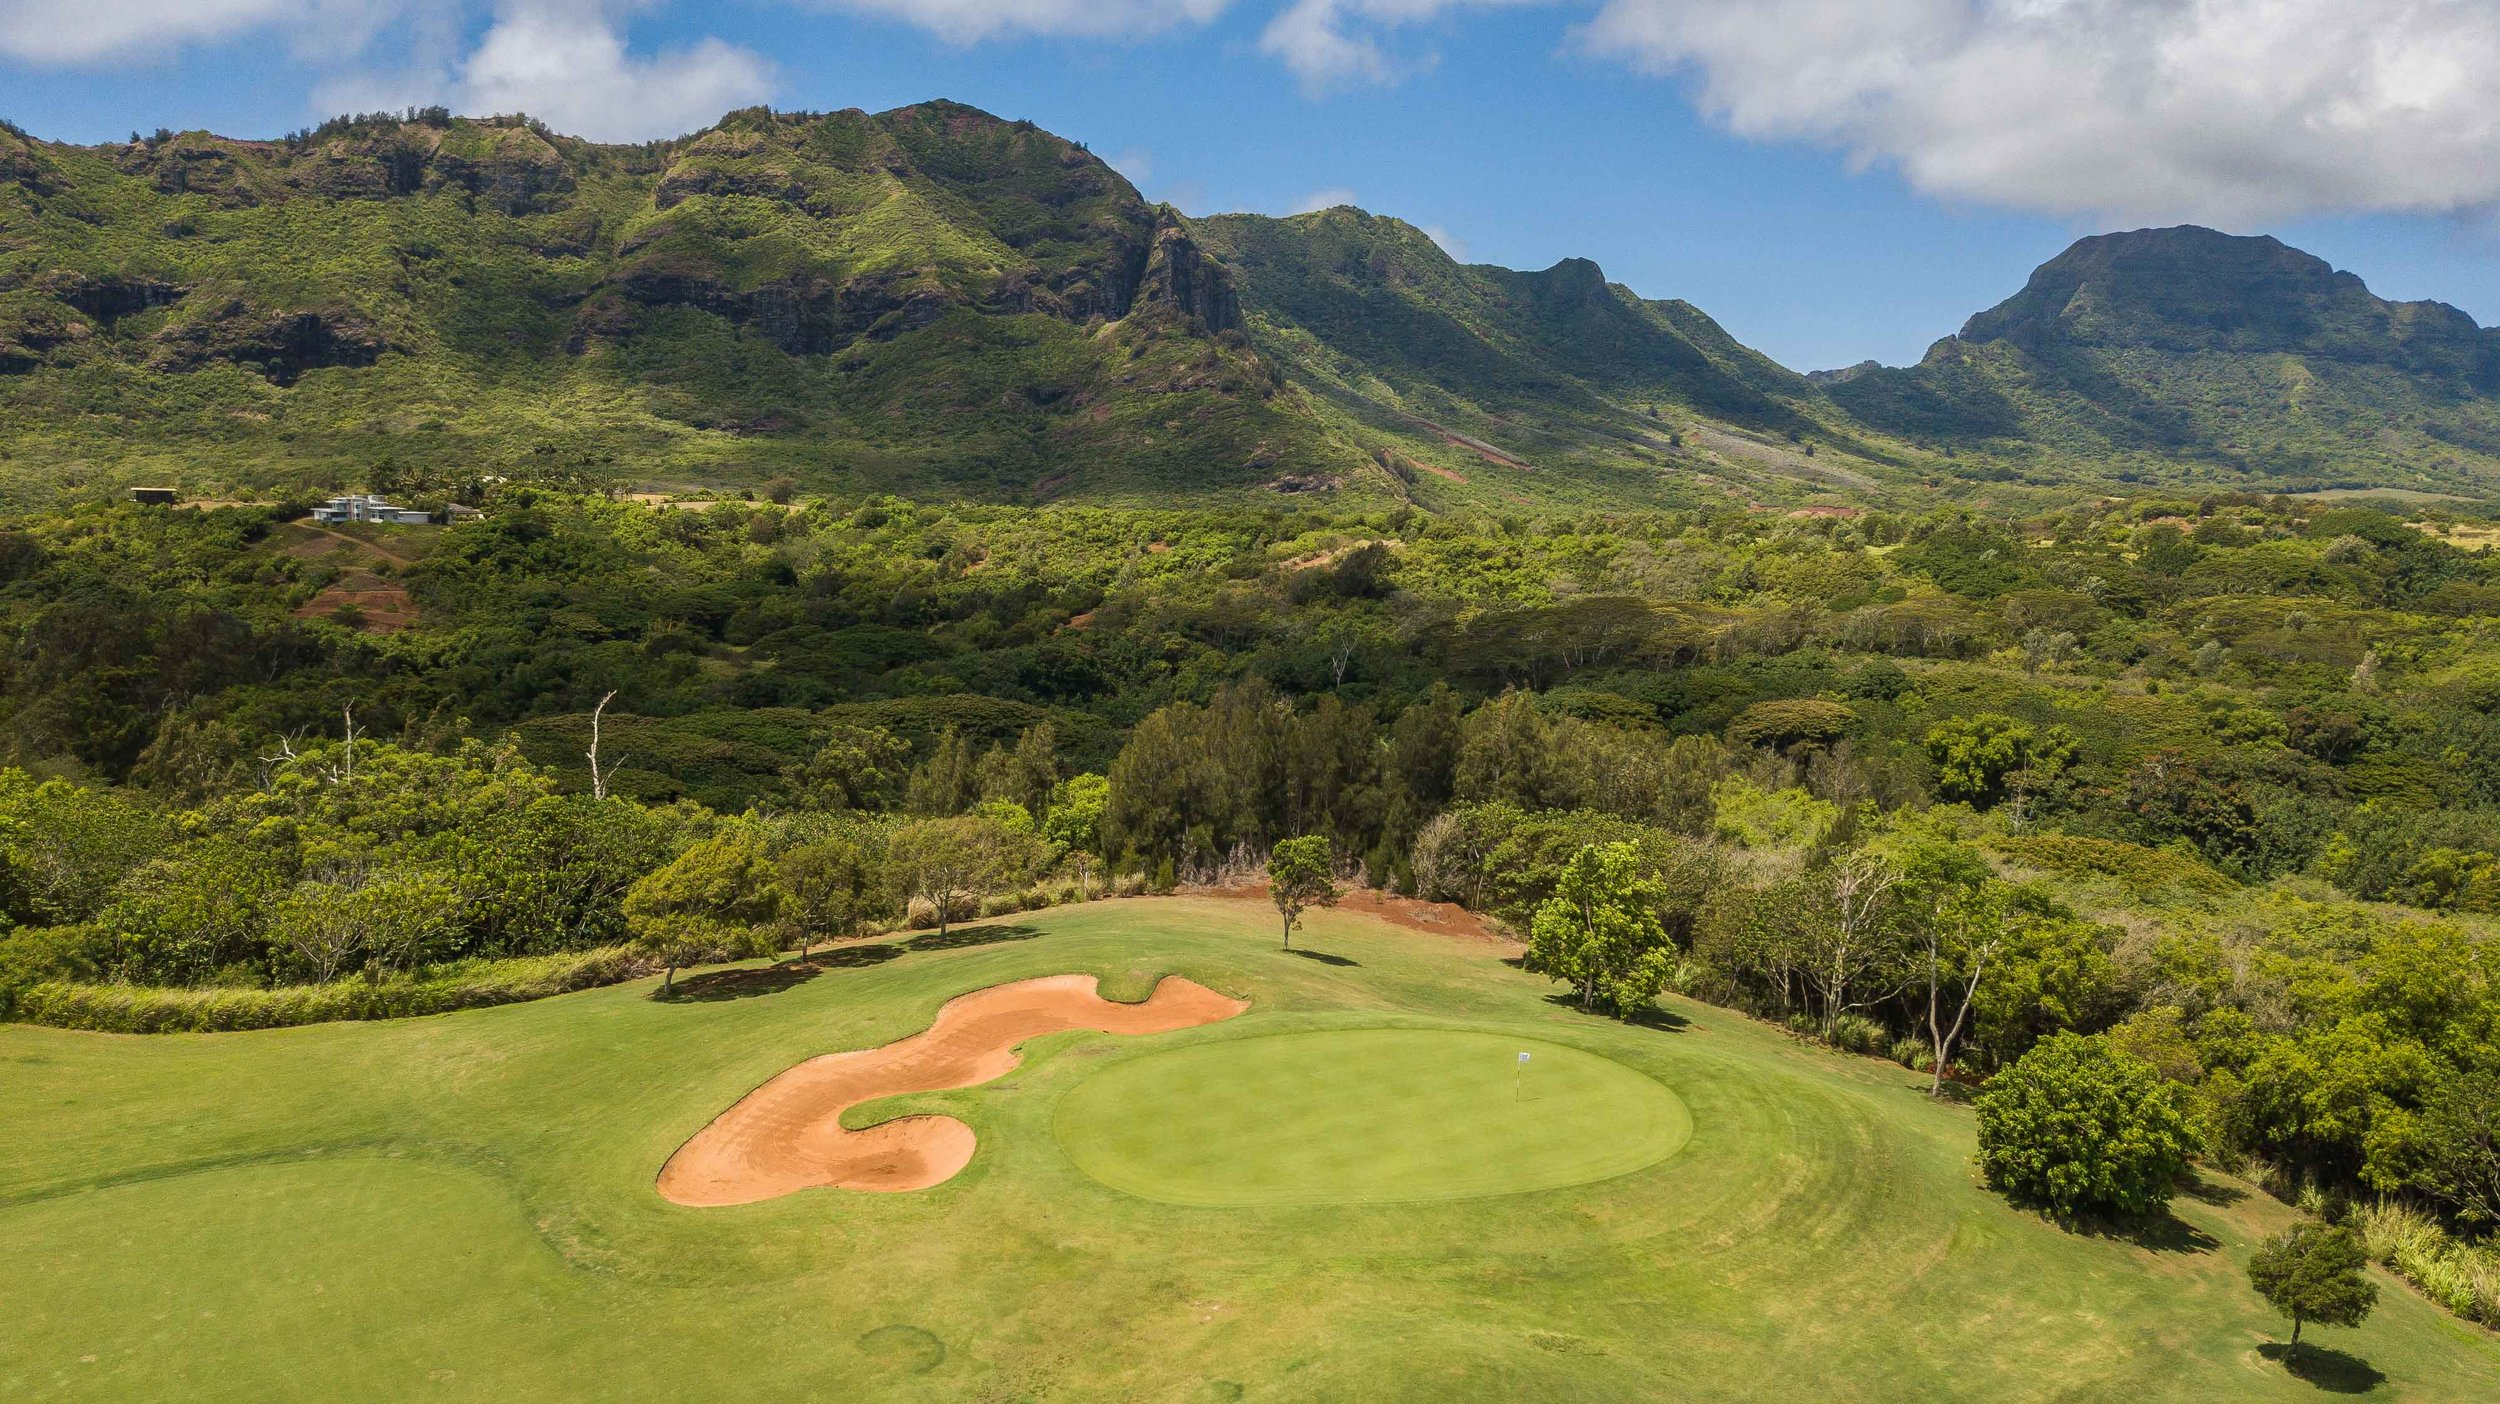 Puakea really digs into the tropics on the back nine.